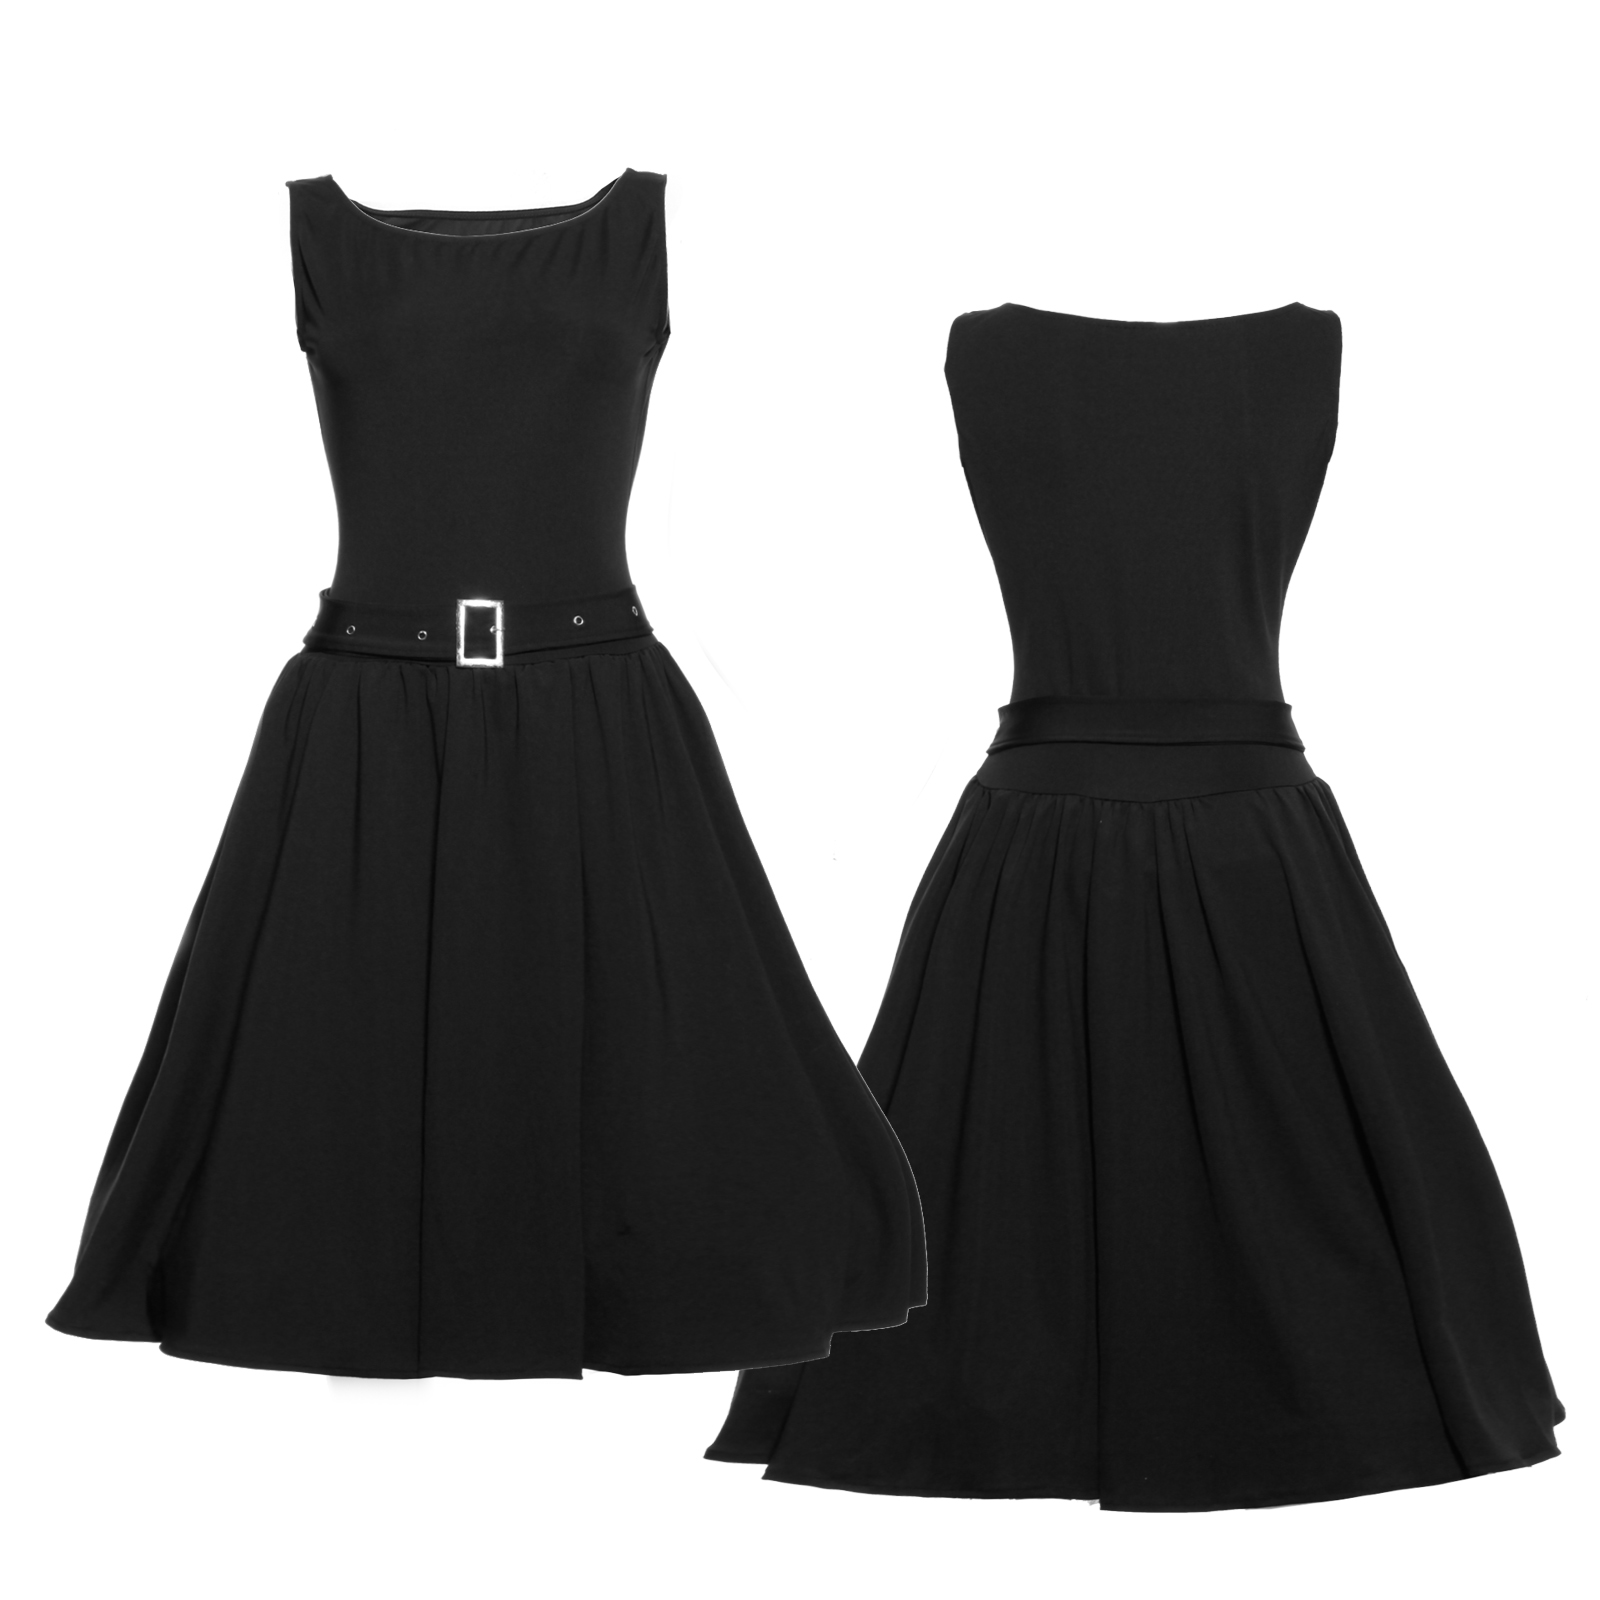 50er hepburn stil damen rockabilly cocktail party kleid swing kleider petticoat ebay - Rockabilly outfit damen ...